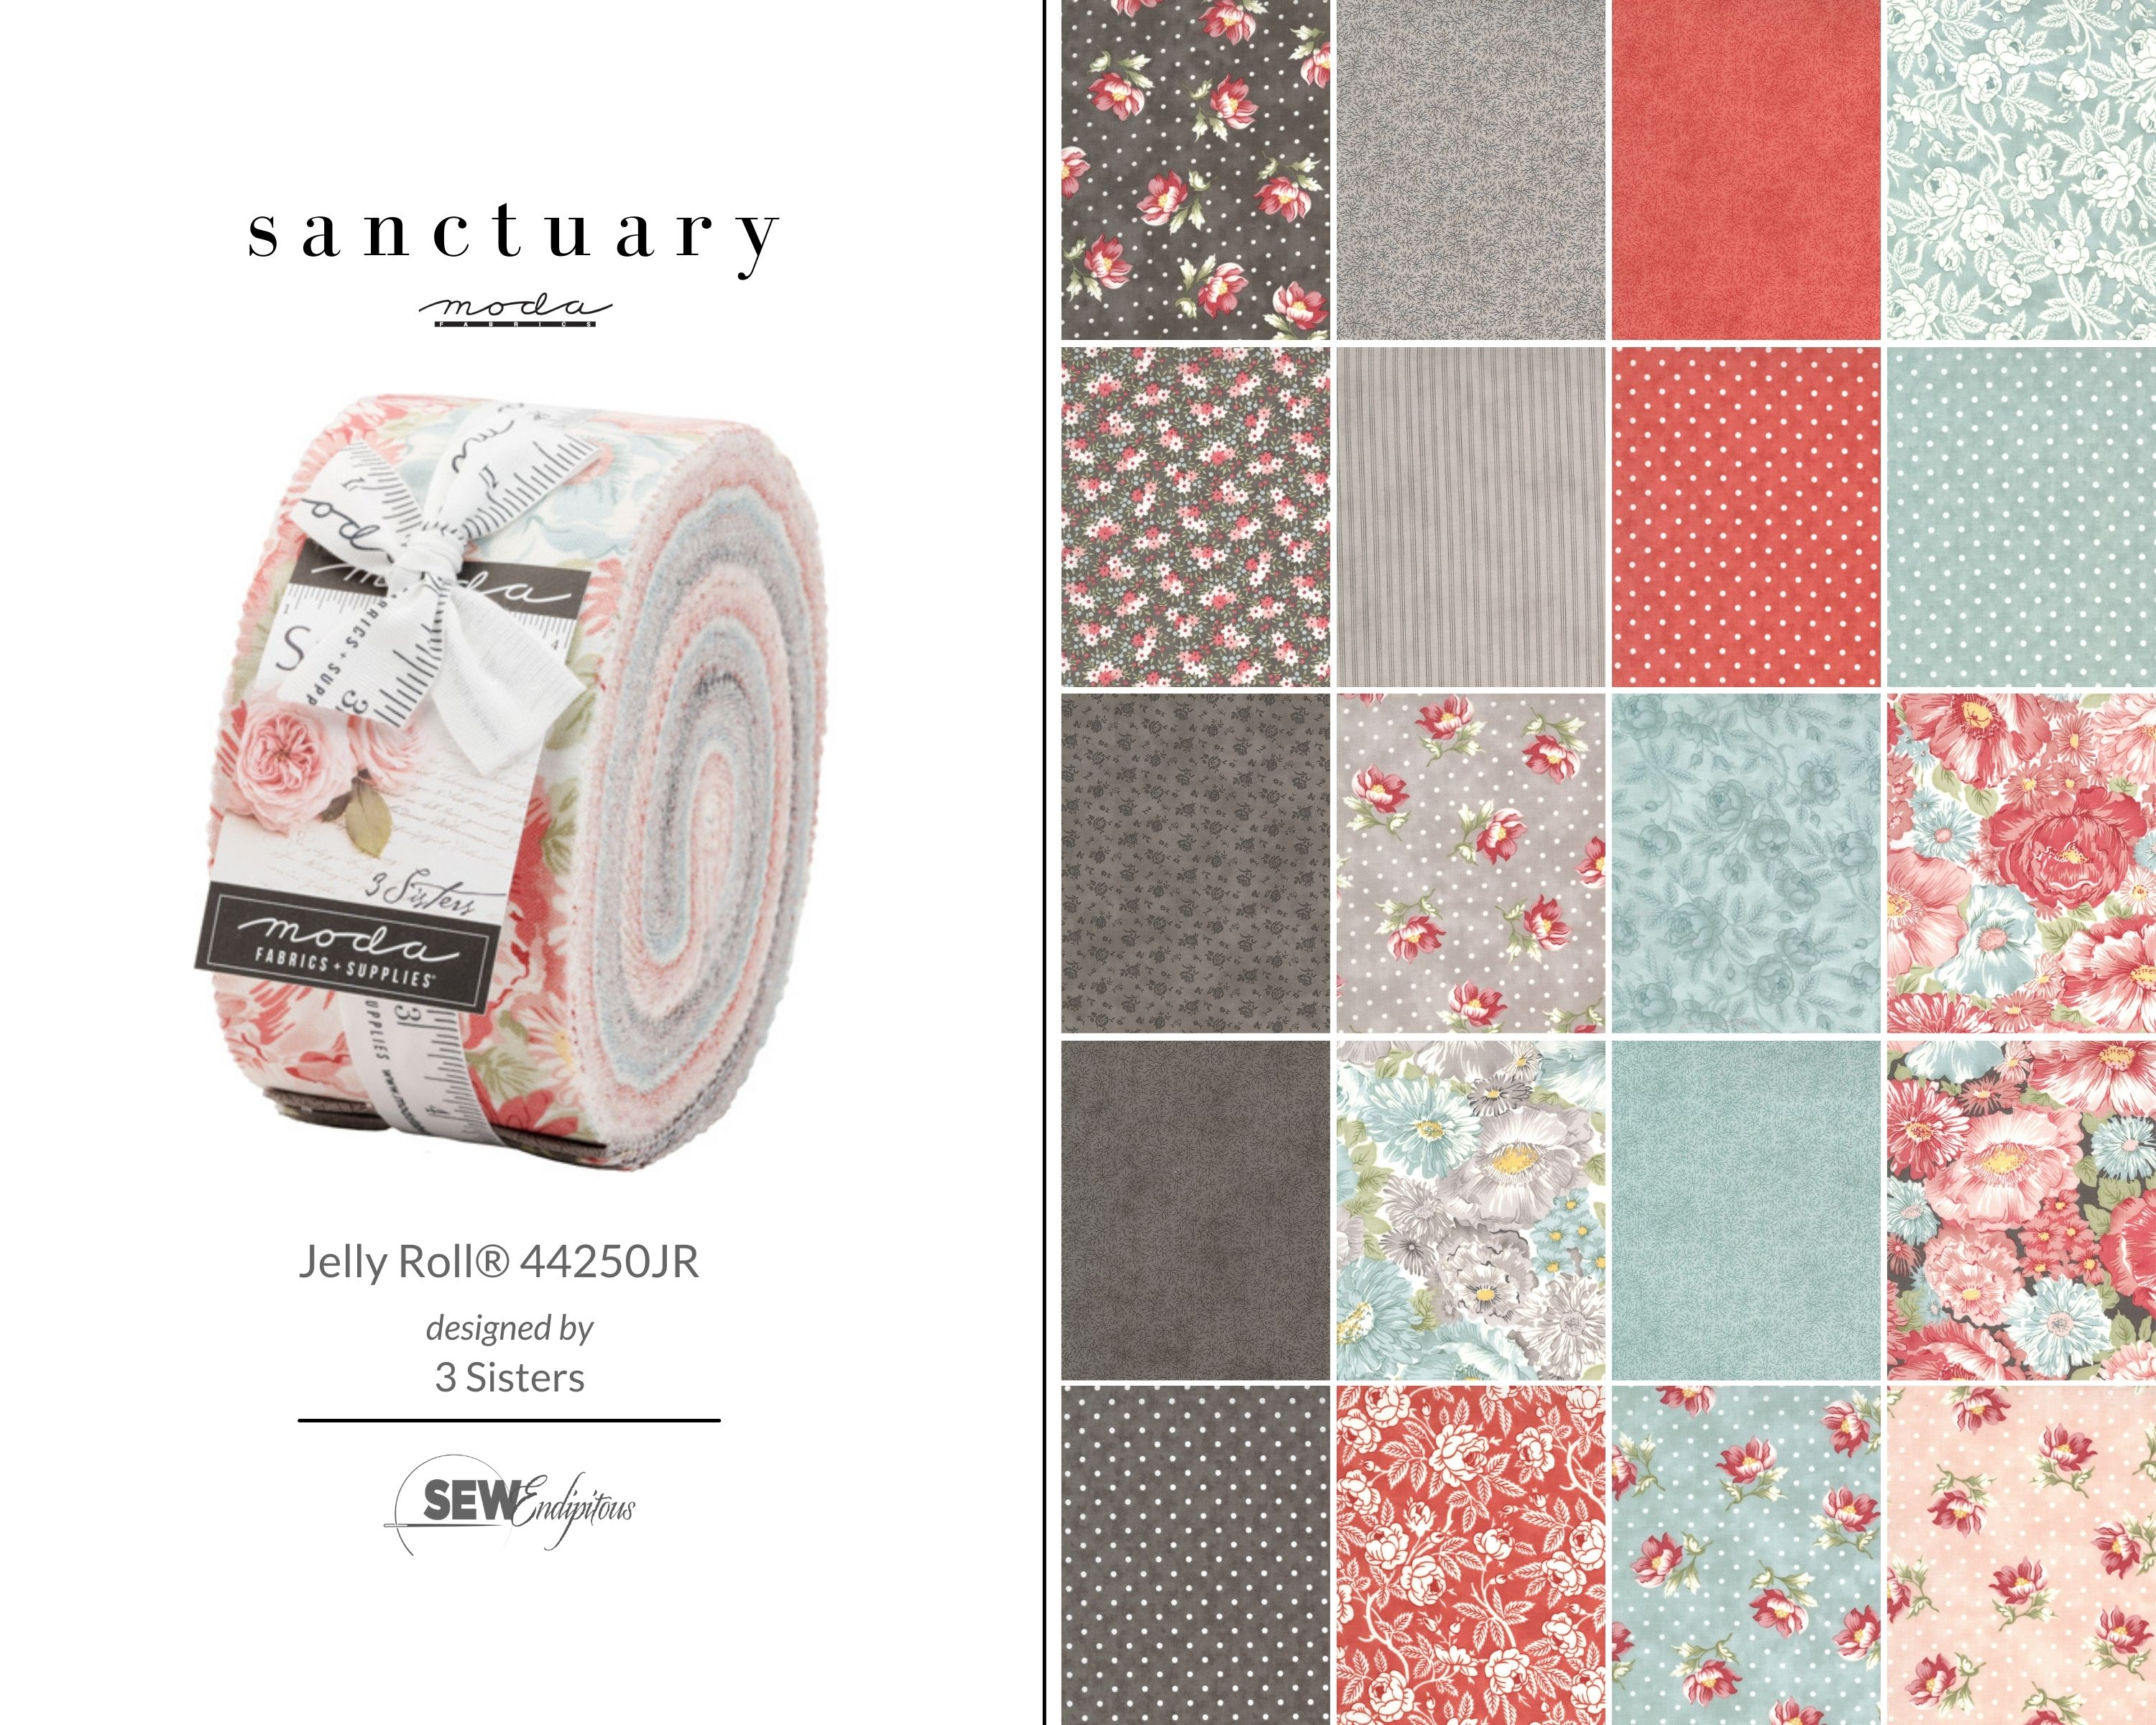 Sanctuary - Jelly Roll 44250JR